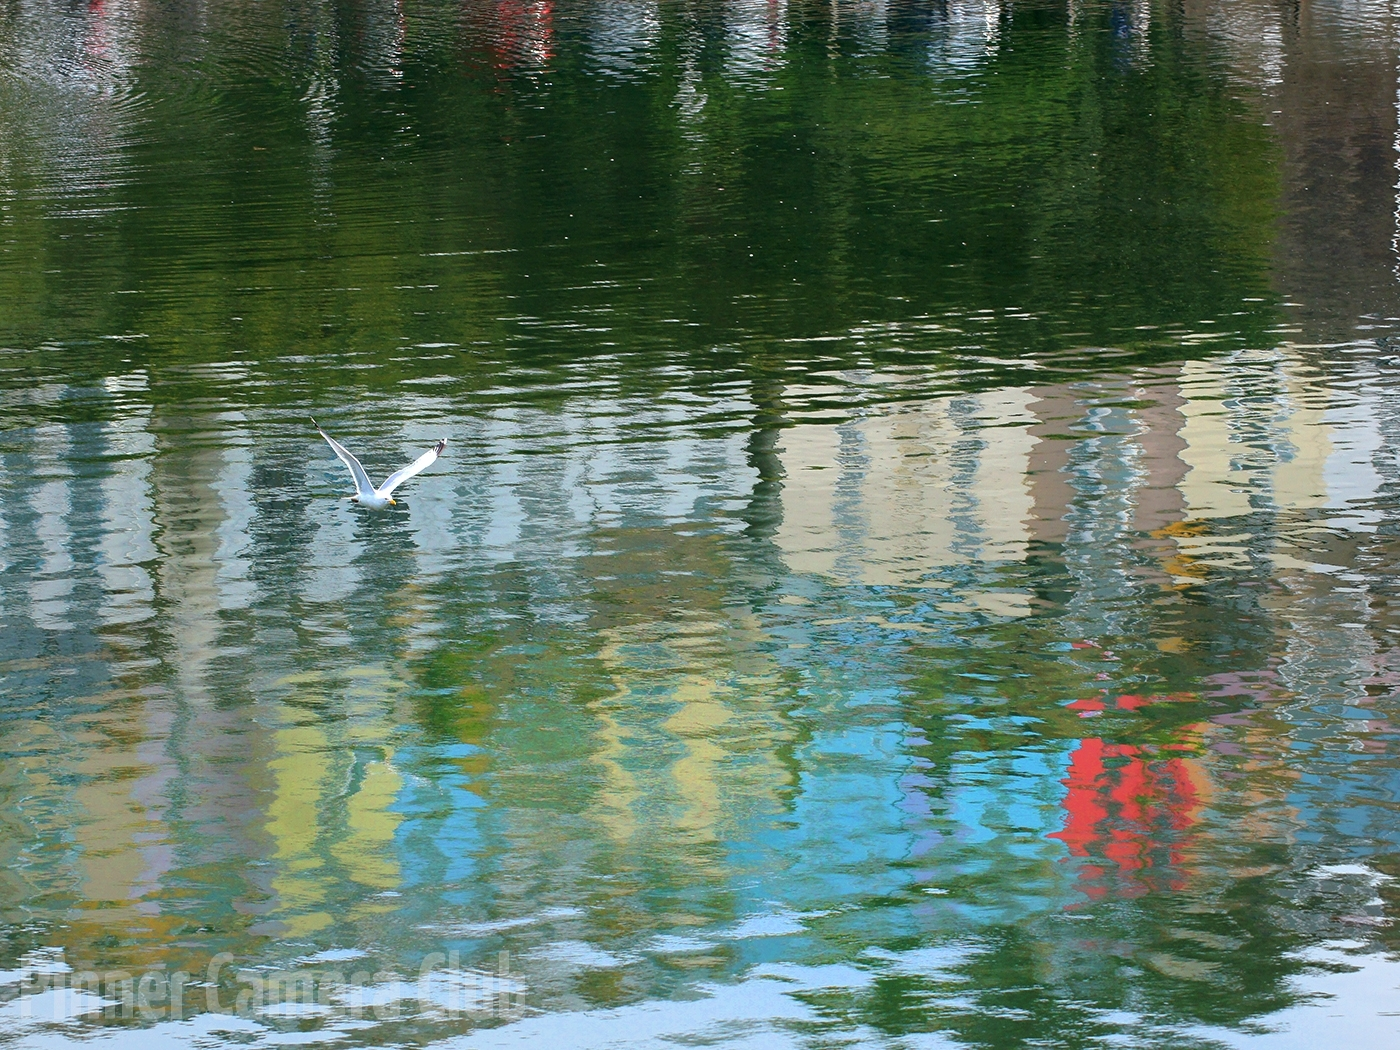 33. GULL AND REFLECTIONS by Les Spitz